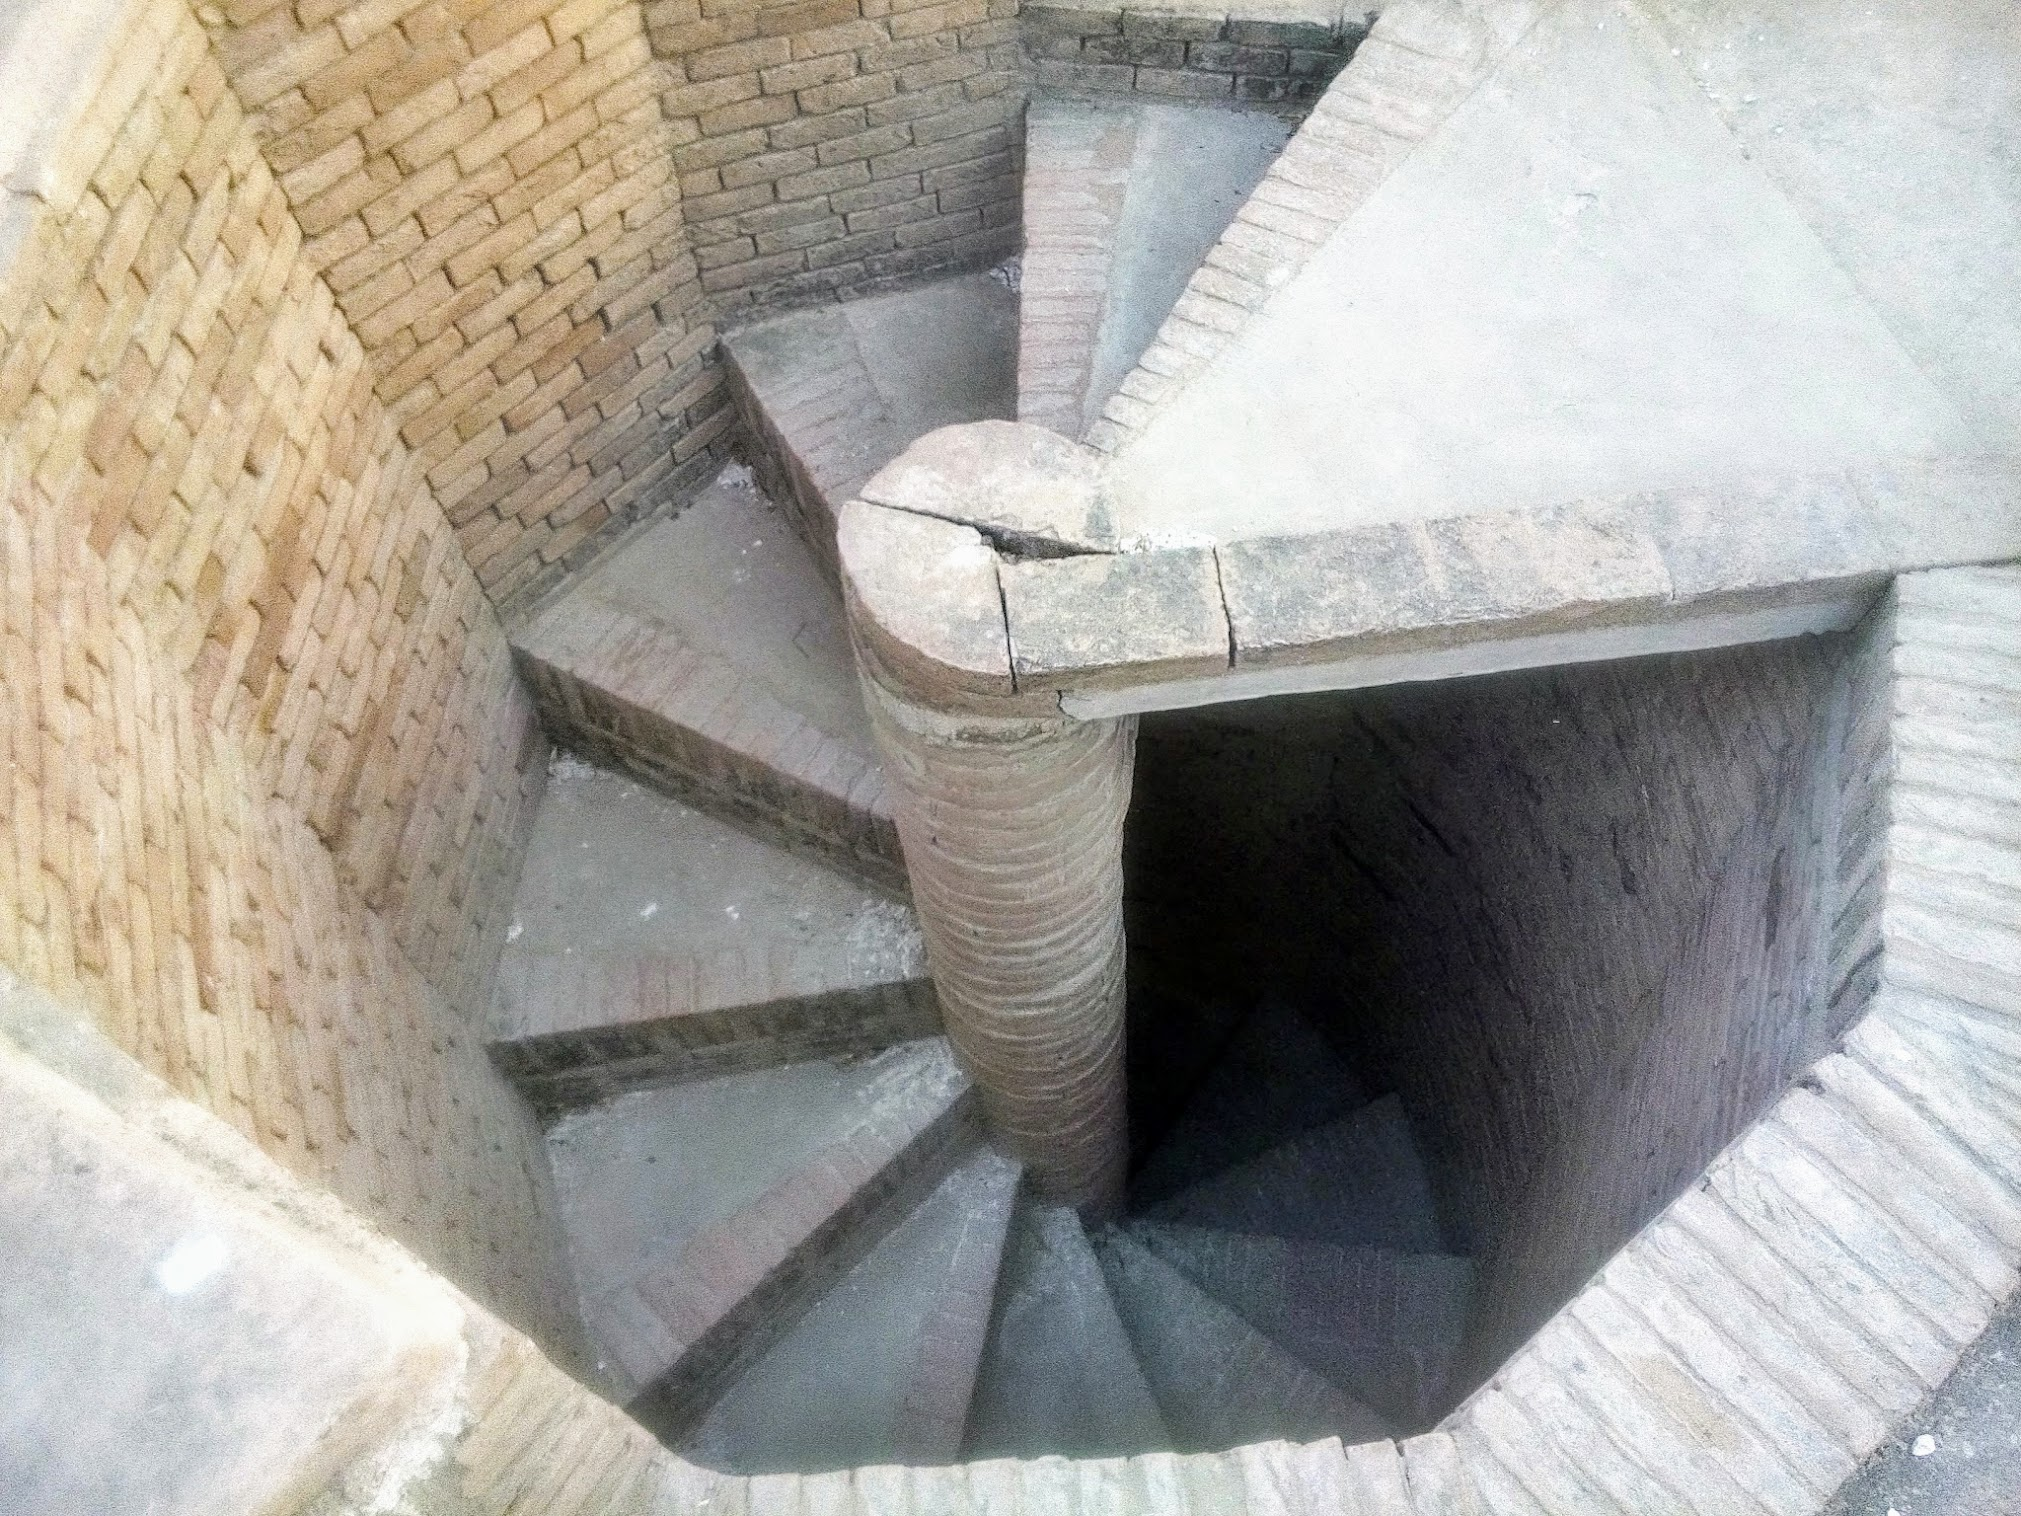 Stairs leading to rooftop